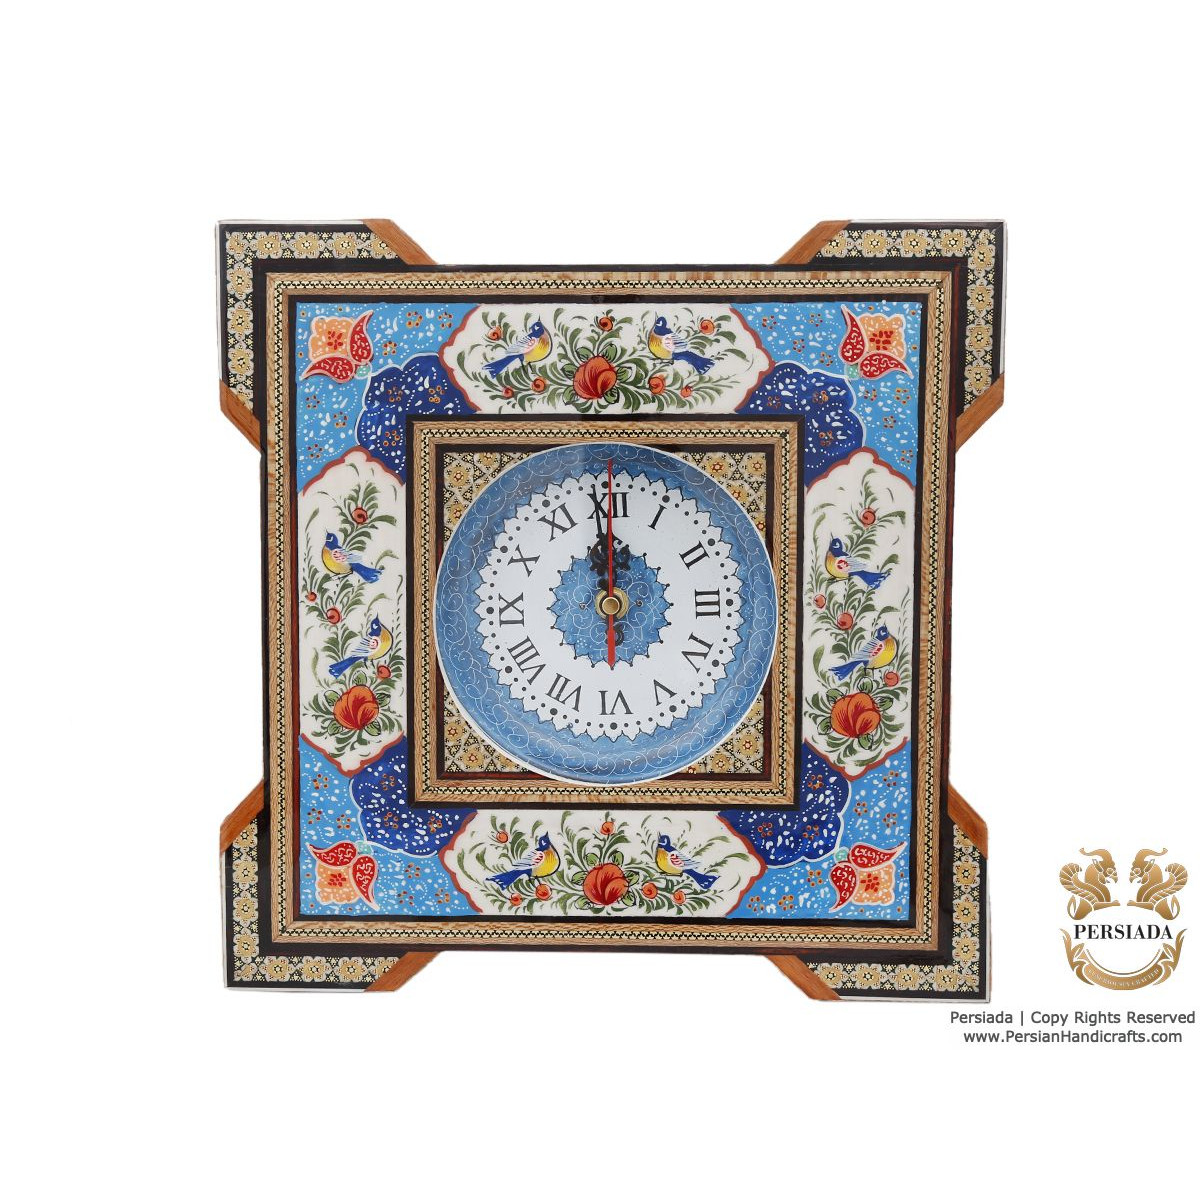 Square Wall Clock - Miniature on Khatam | HM4101 Persiada-Persian Handicrafts